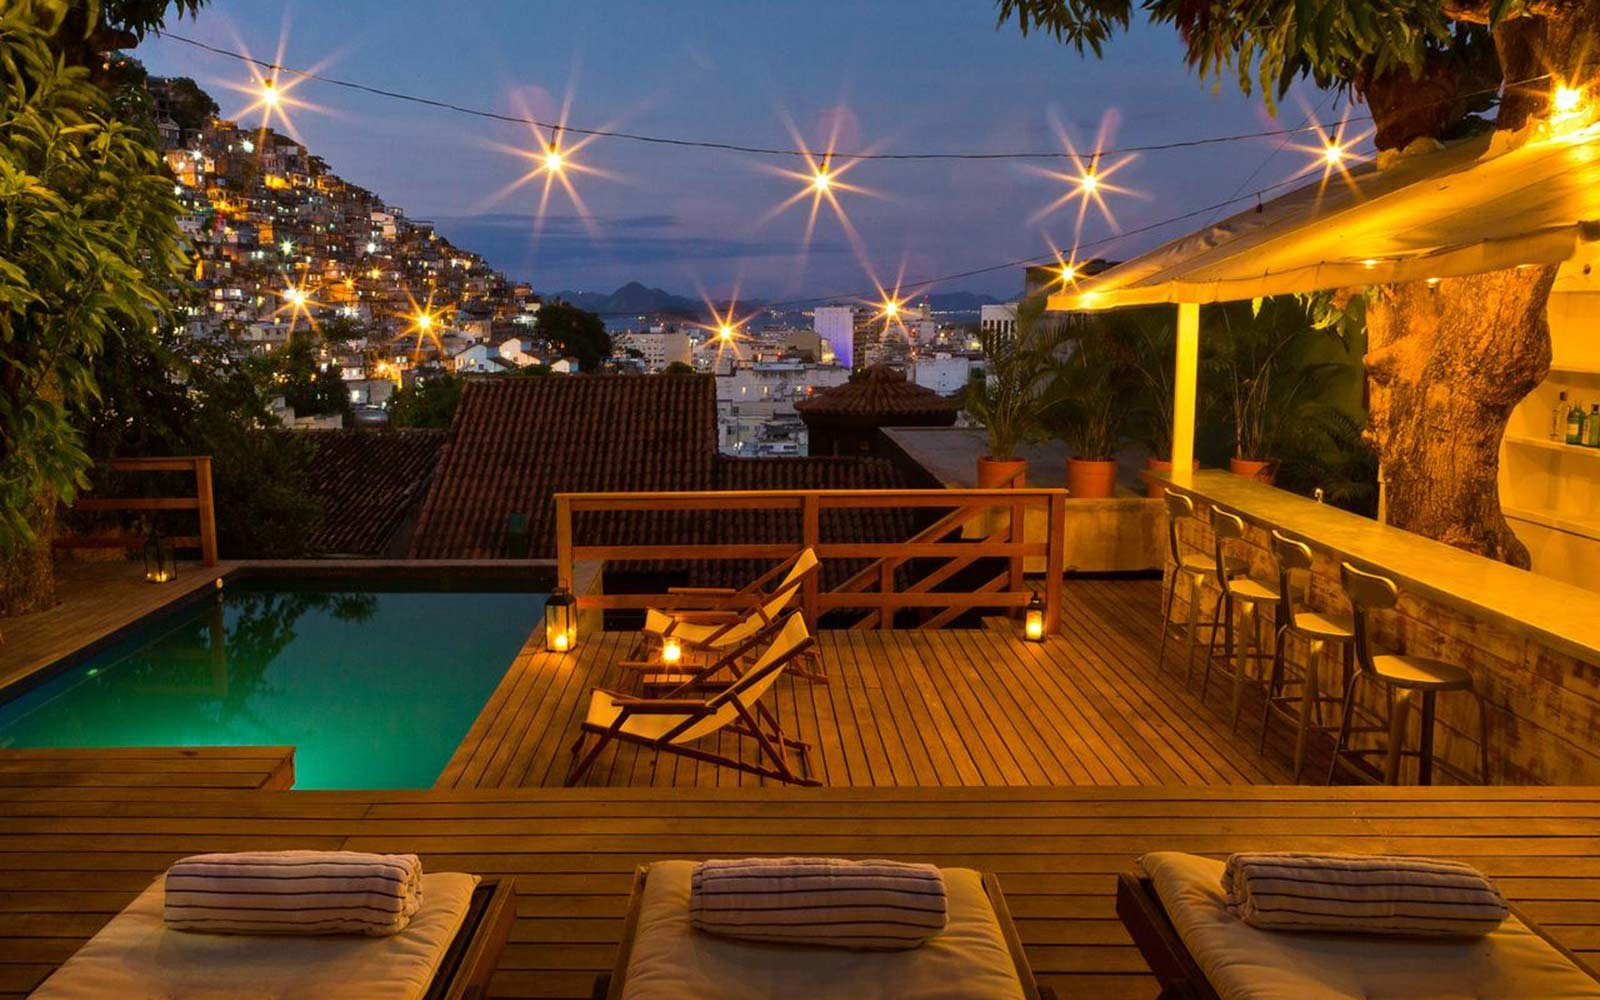 Charming Suite in Ipanema by the Hill in Copacabana, Rio de Janeiro, Brazil